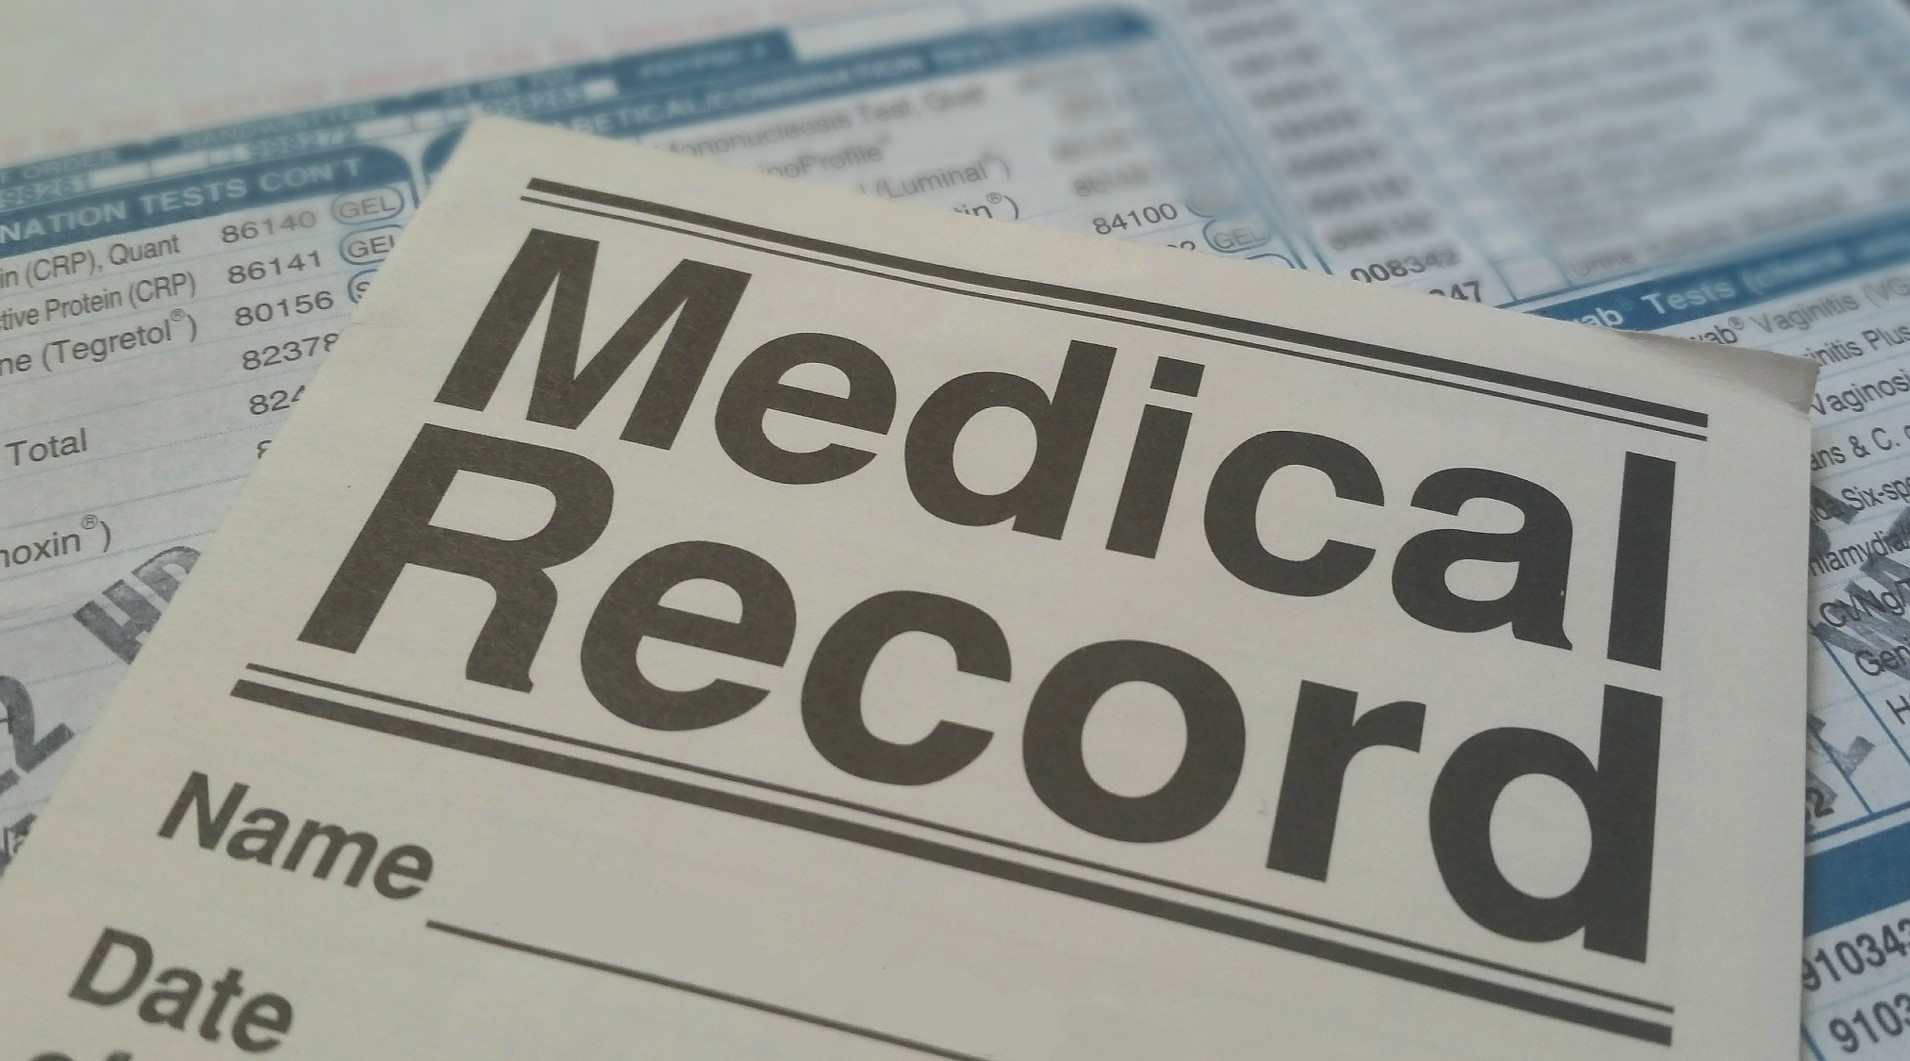 Verify only appropriate staff can access medical records